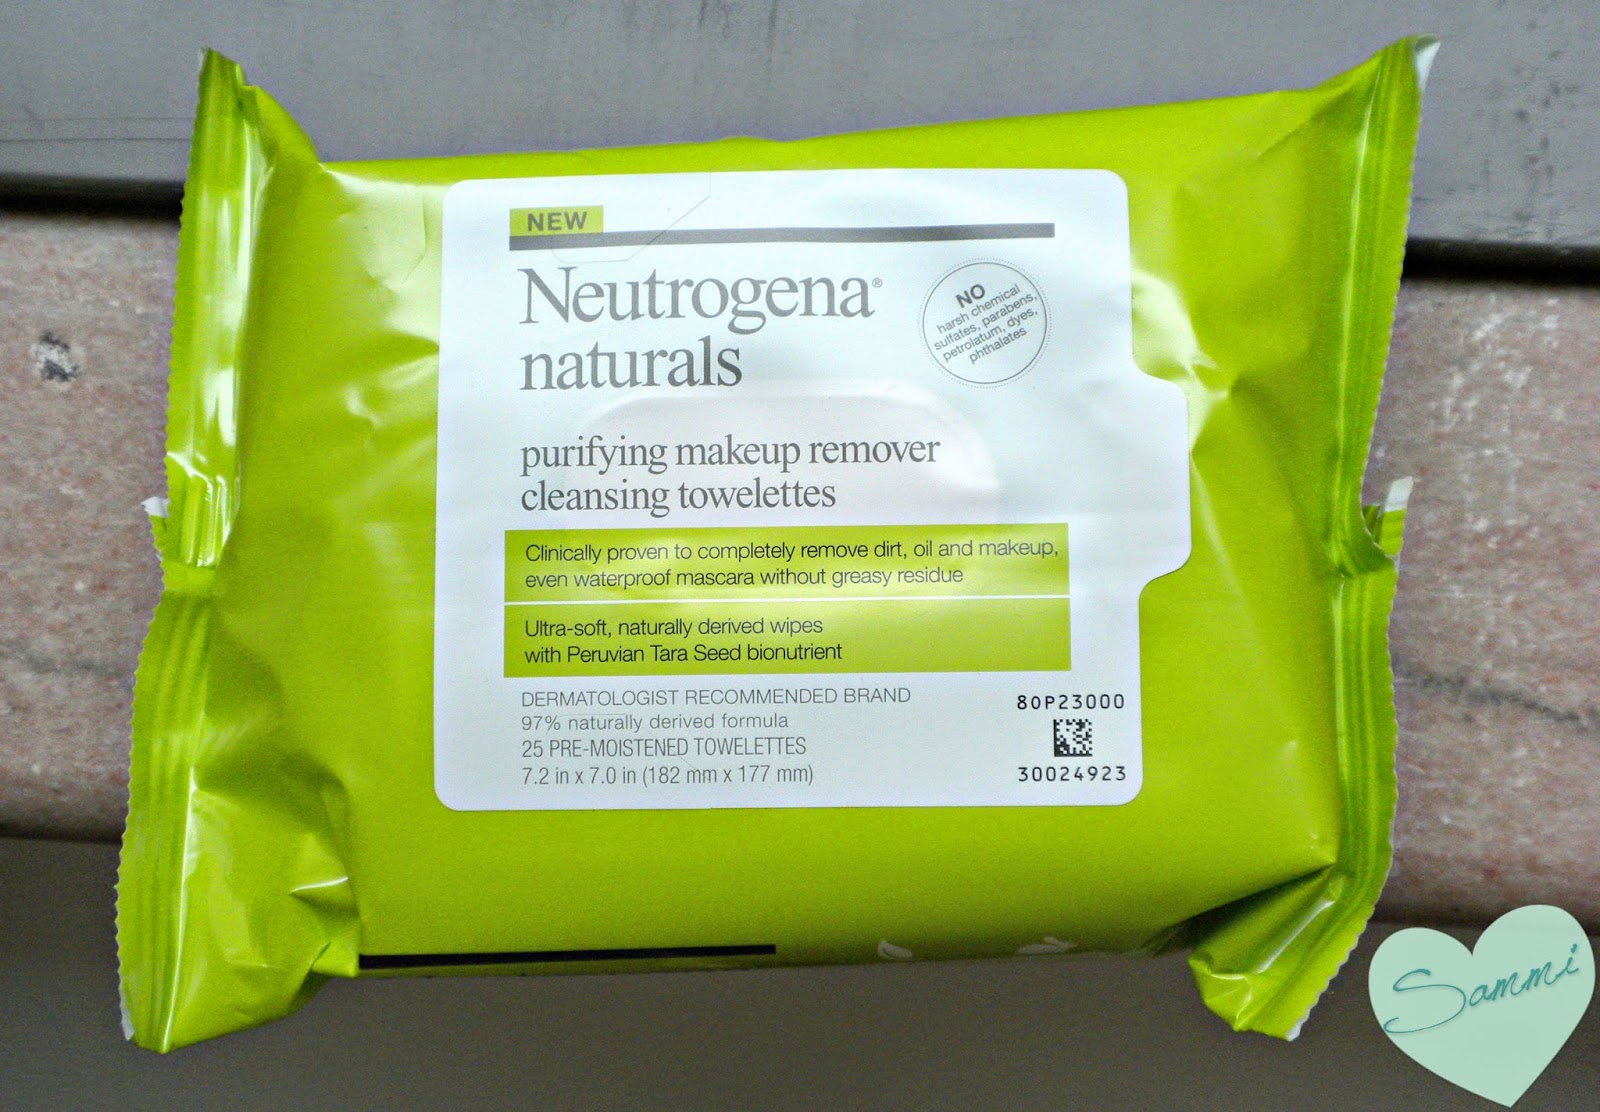 NEUTROGENA Naturals Purifying Makeup Remover Cleansing Wipes ($7 for 25 wipes)